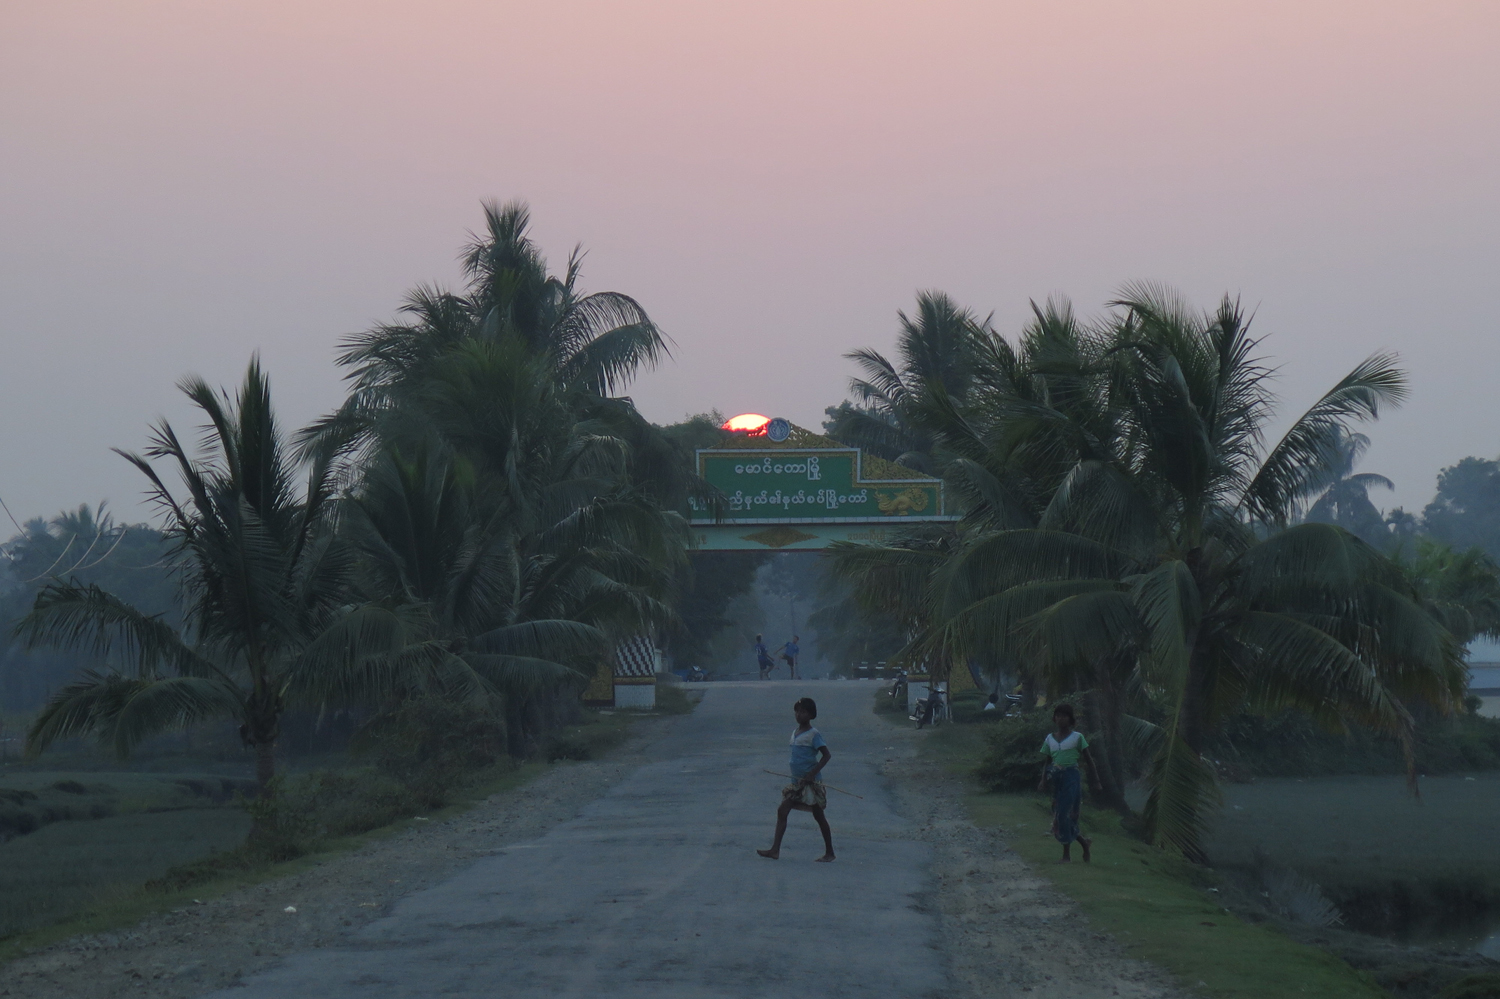 The entrance to Maungdaw town. (Photo: Moe Myint / The Irrawaddy)